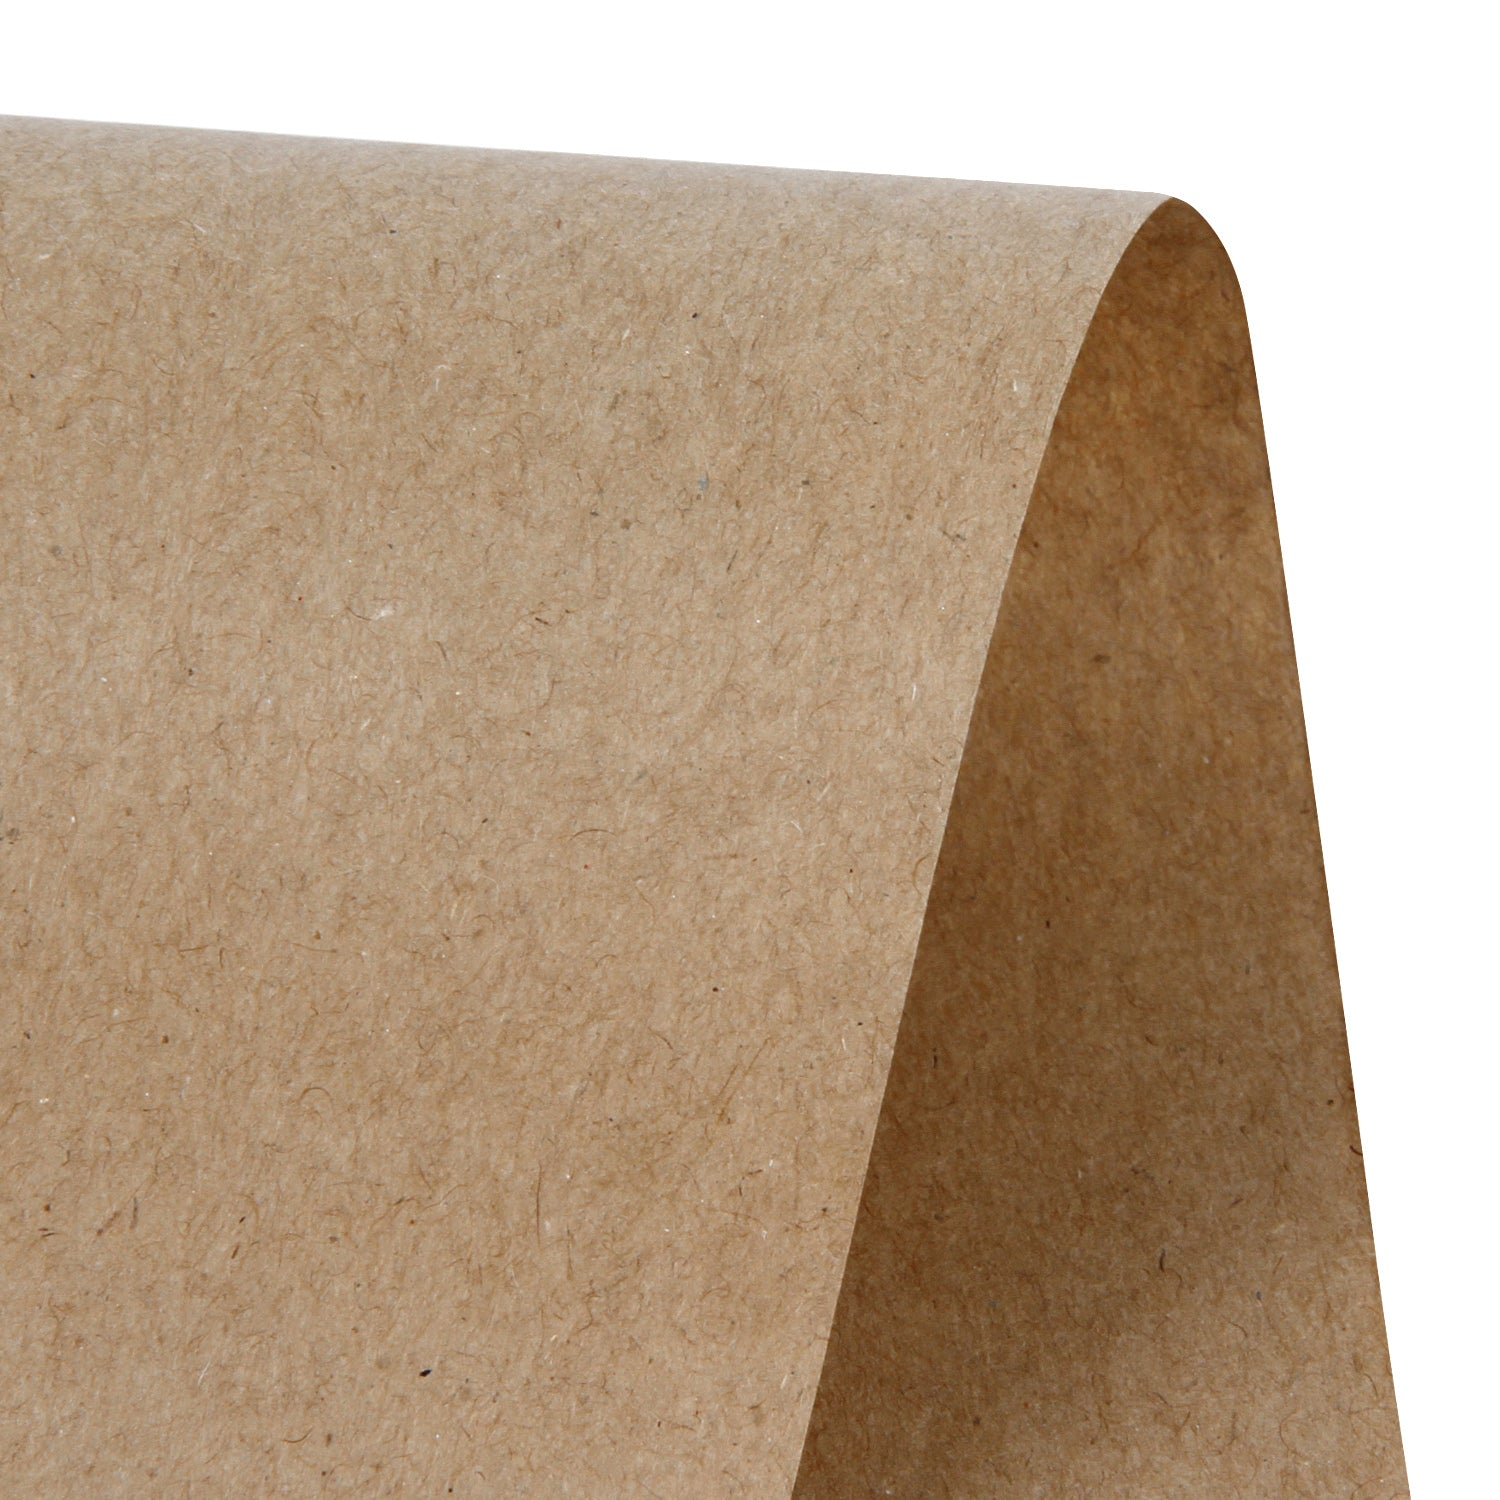 RUSPEPA Brown Kraft Paper Roll Recycled Paper Perfect for Gift Wrapping Craft Dunnage Packing Parcel Floor Covering Table Runner 36 Inch x 100 Feet